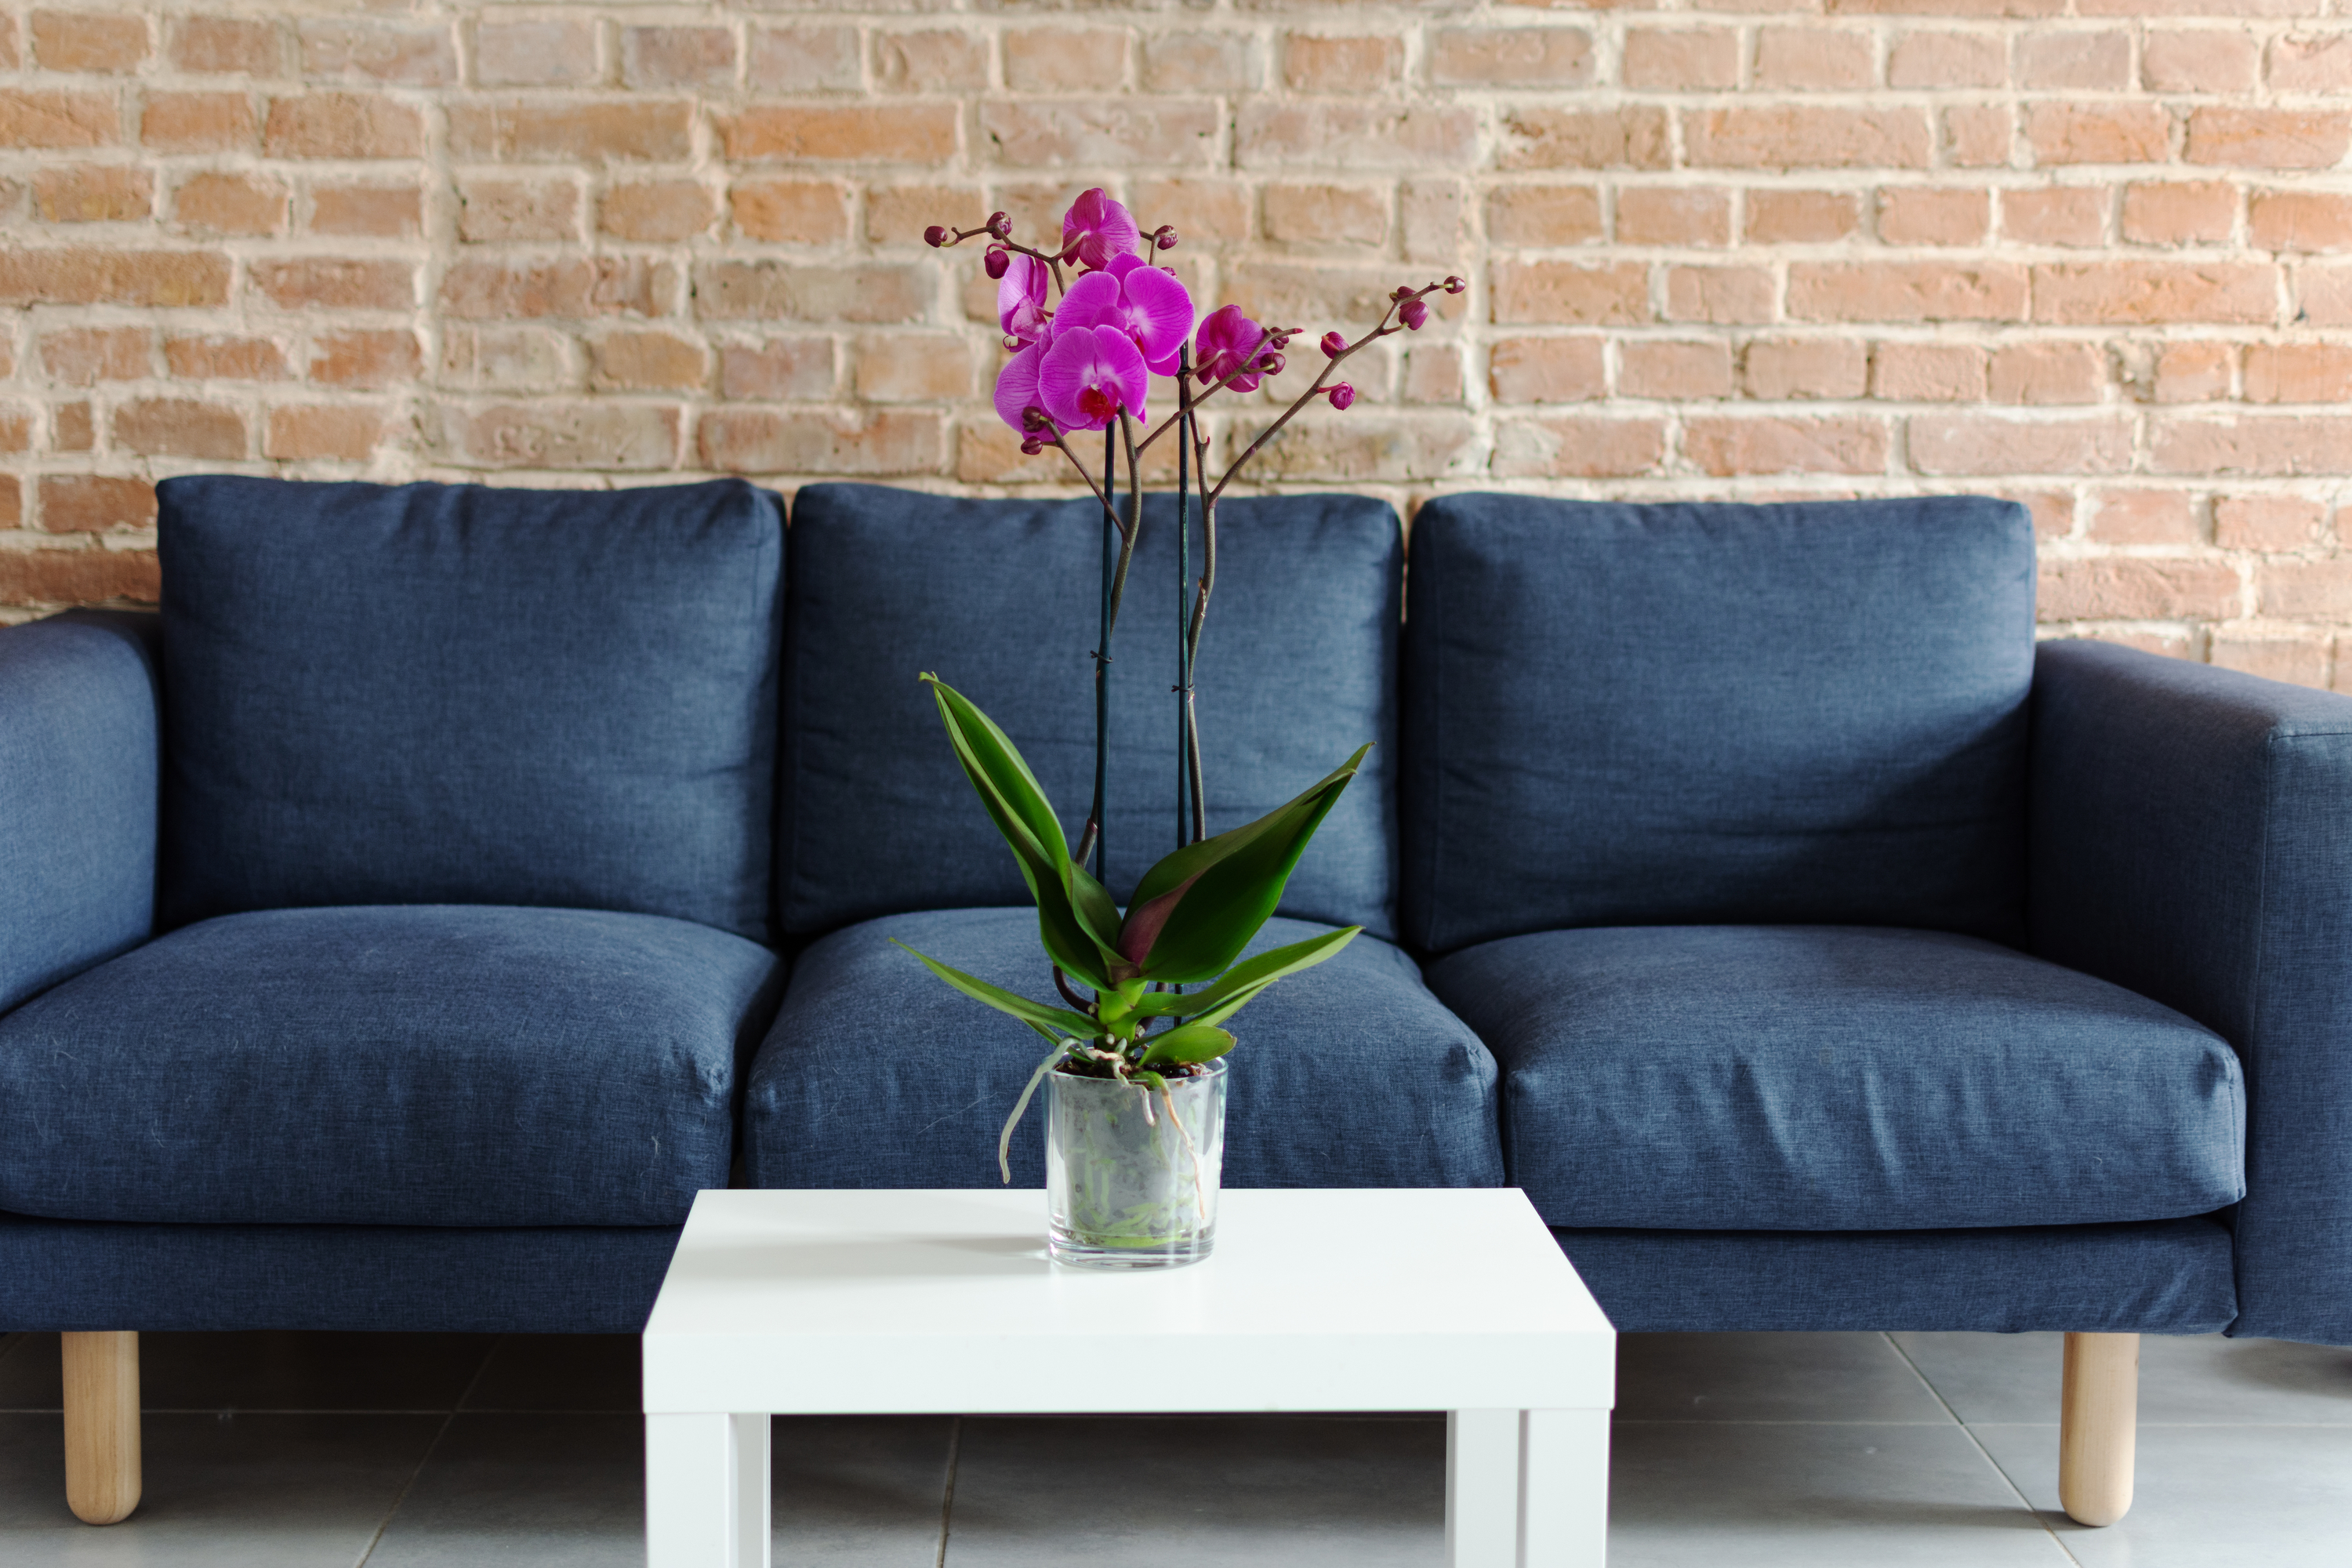 If you own a cat and you want houseplants, make sure you know which houseplants that are safe for cats. You can't ever go wrong with orchids.